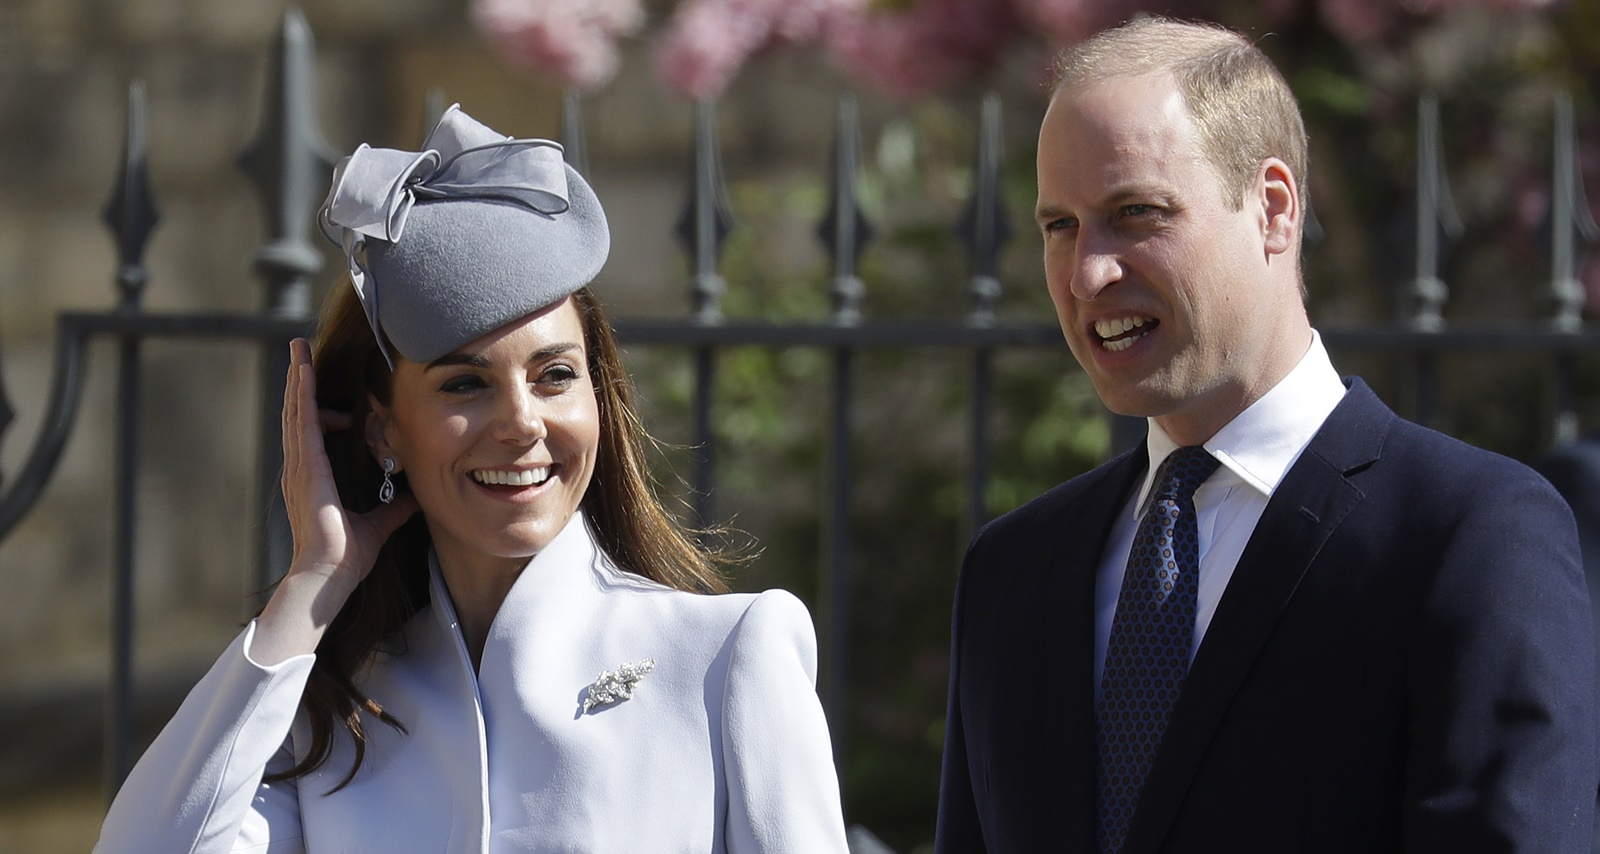 Fact Check: Did Prince William Cheat On Kate Middleton